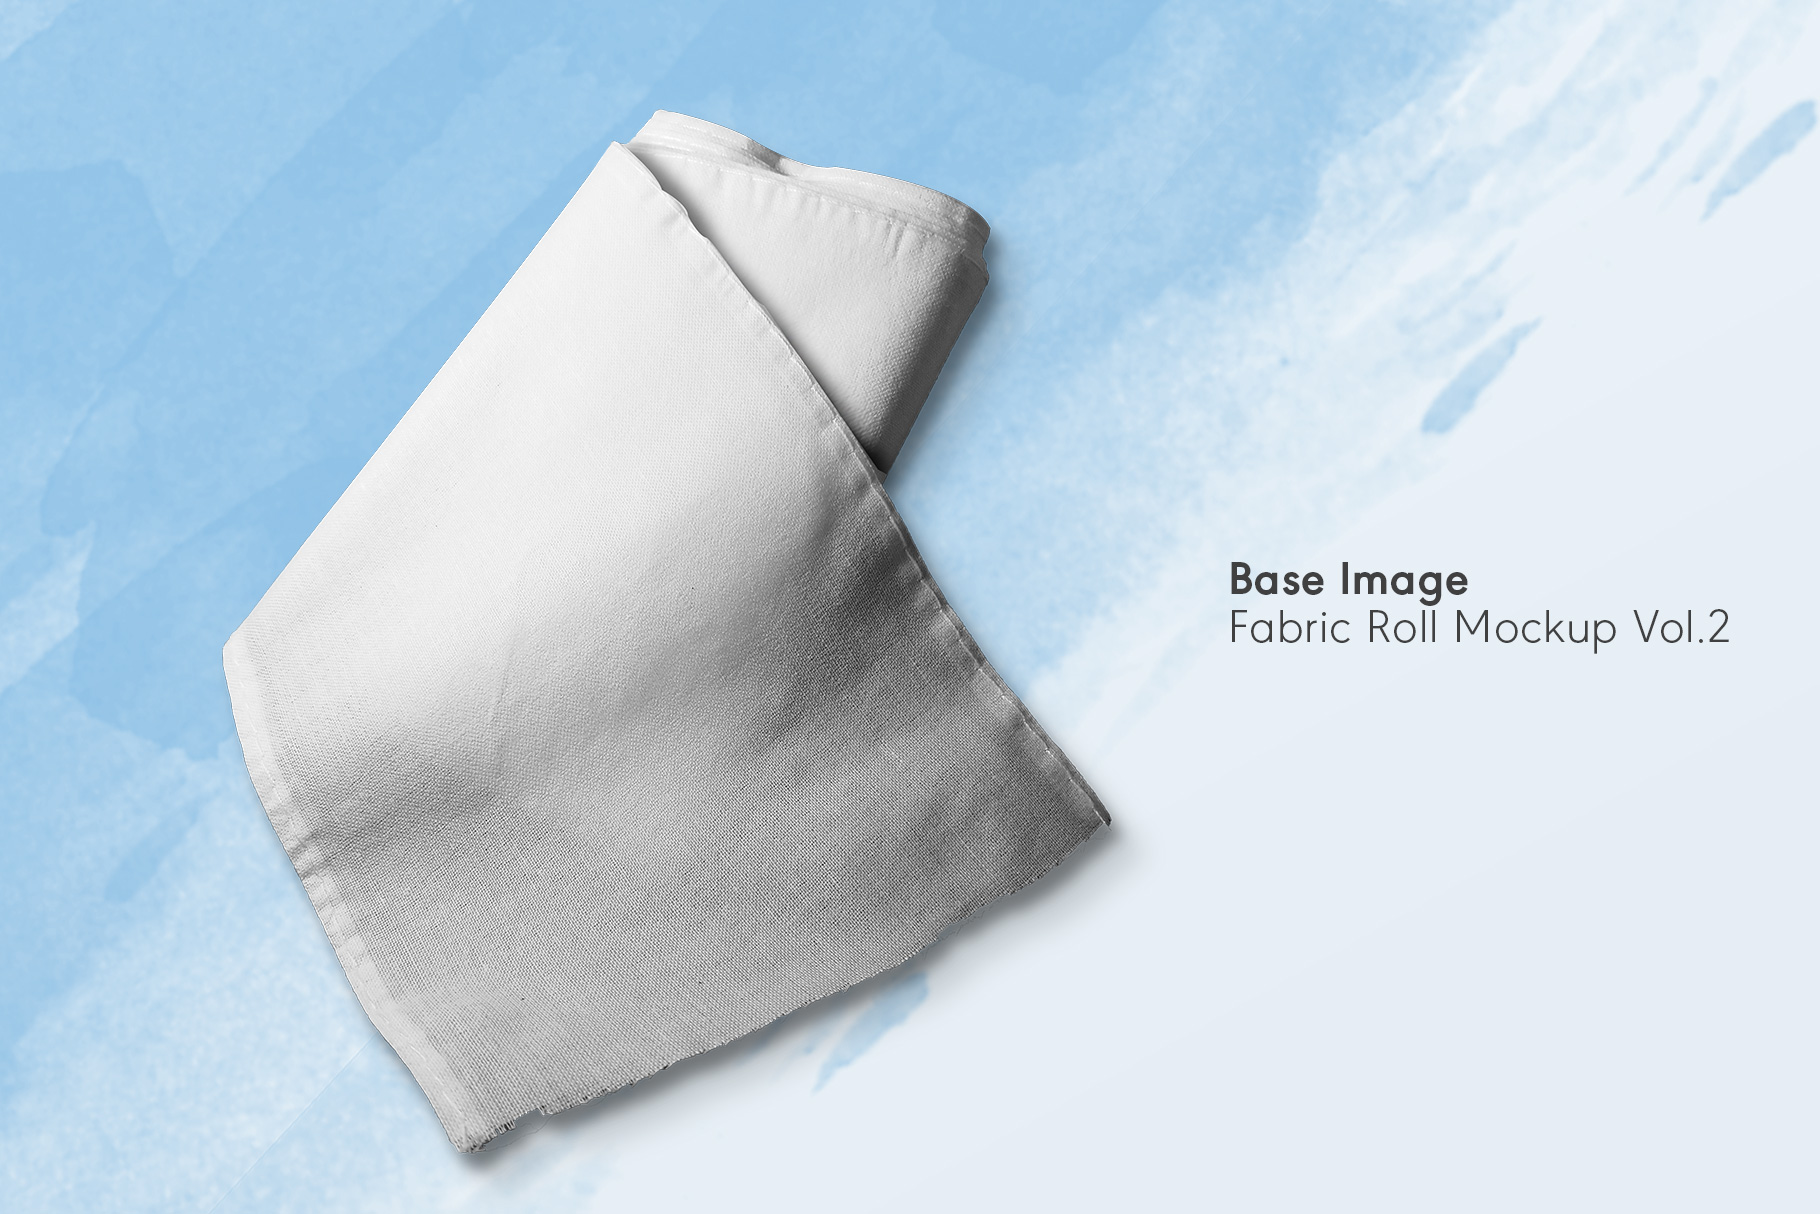 base image of the fabric roll mockup vol.2